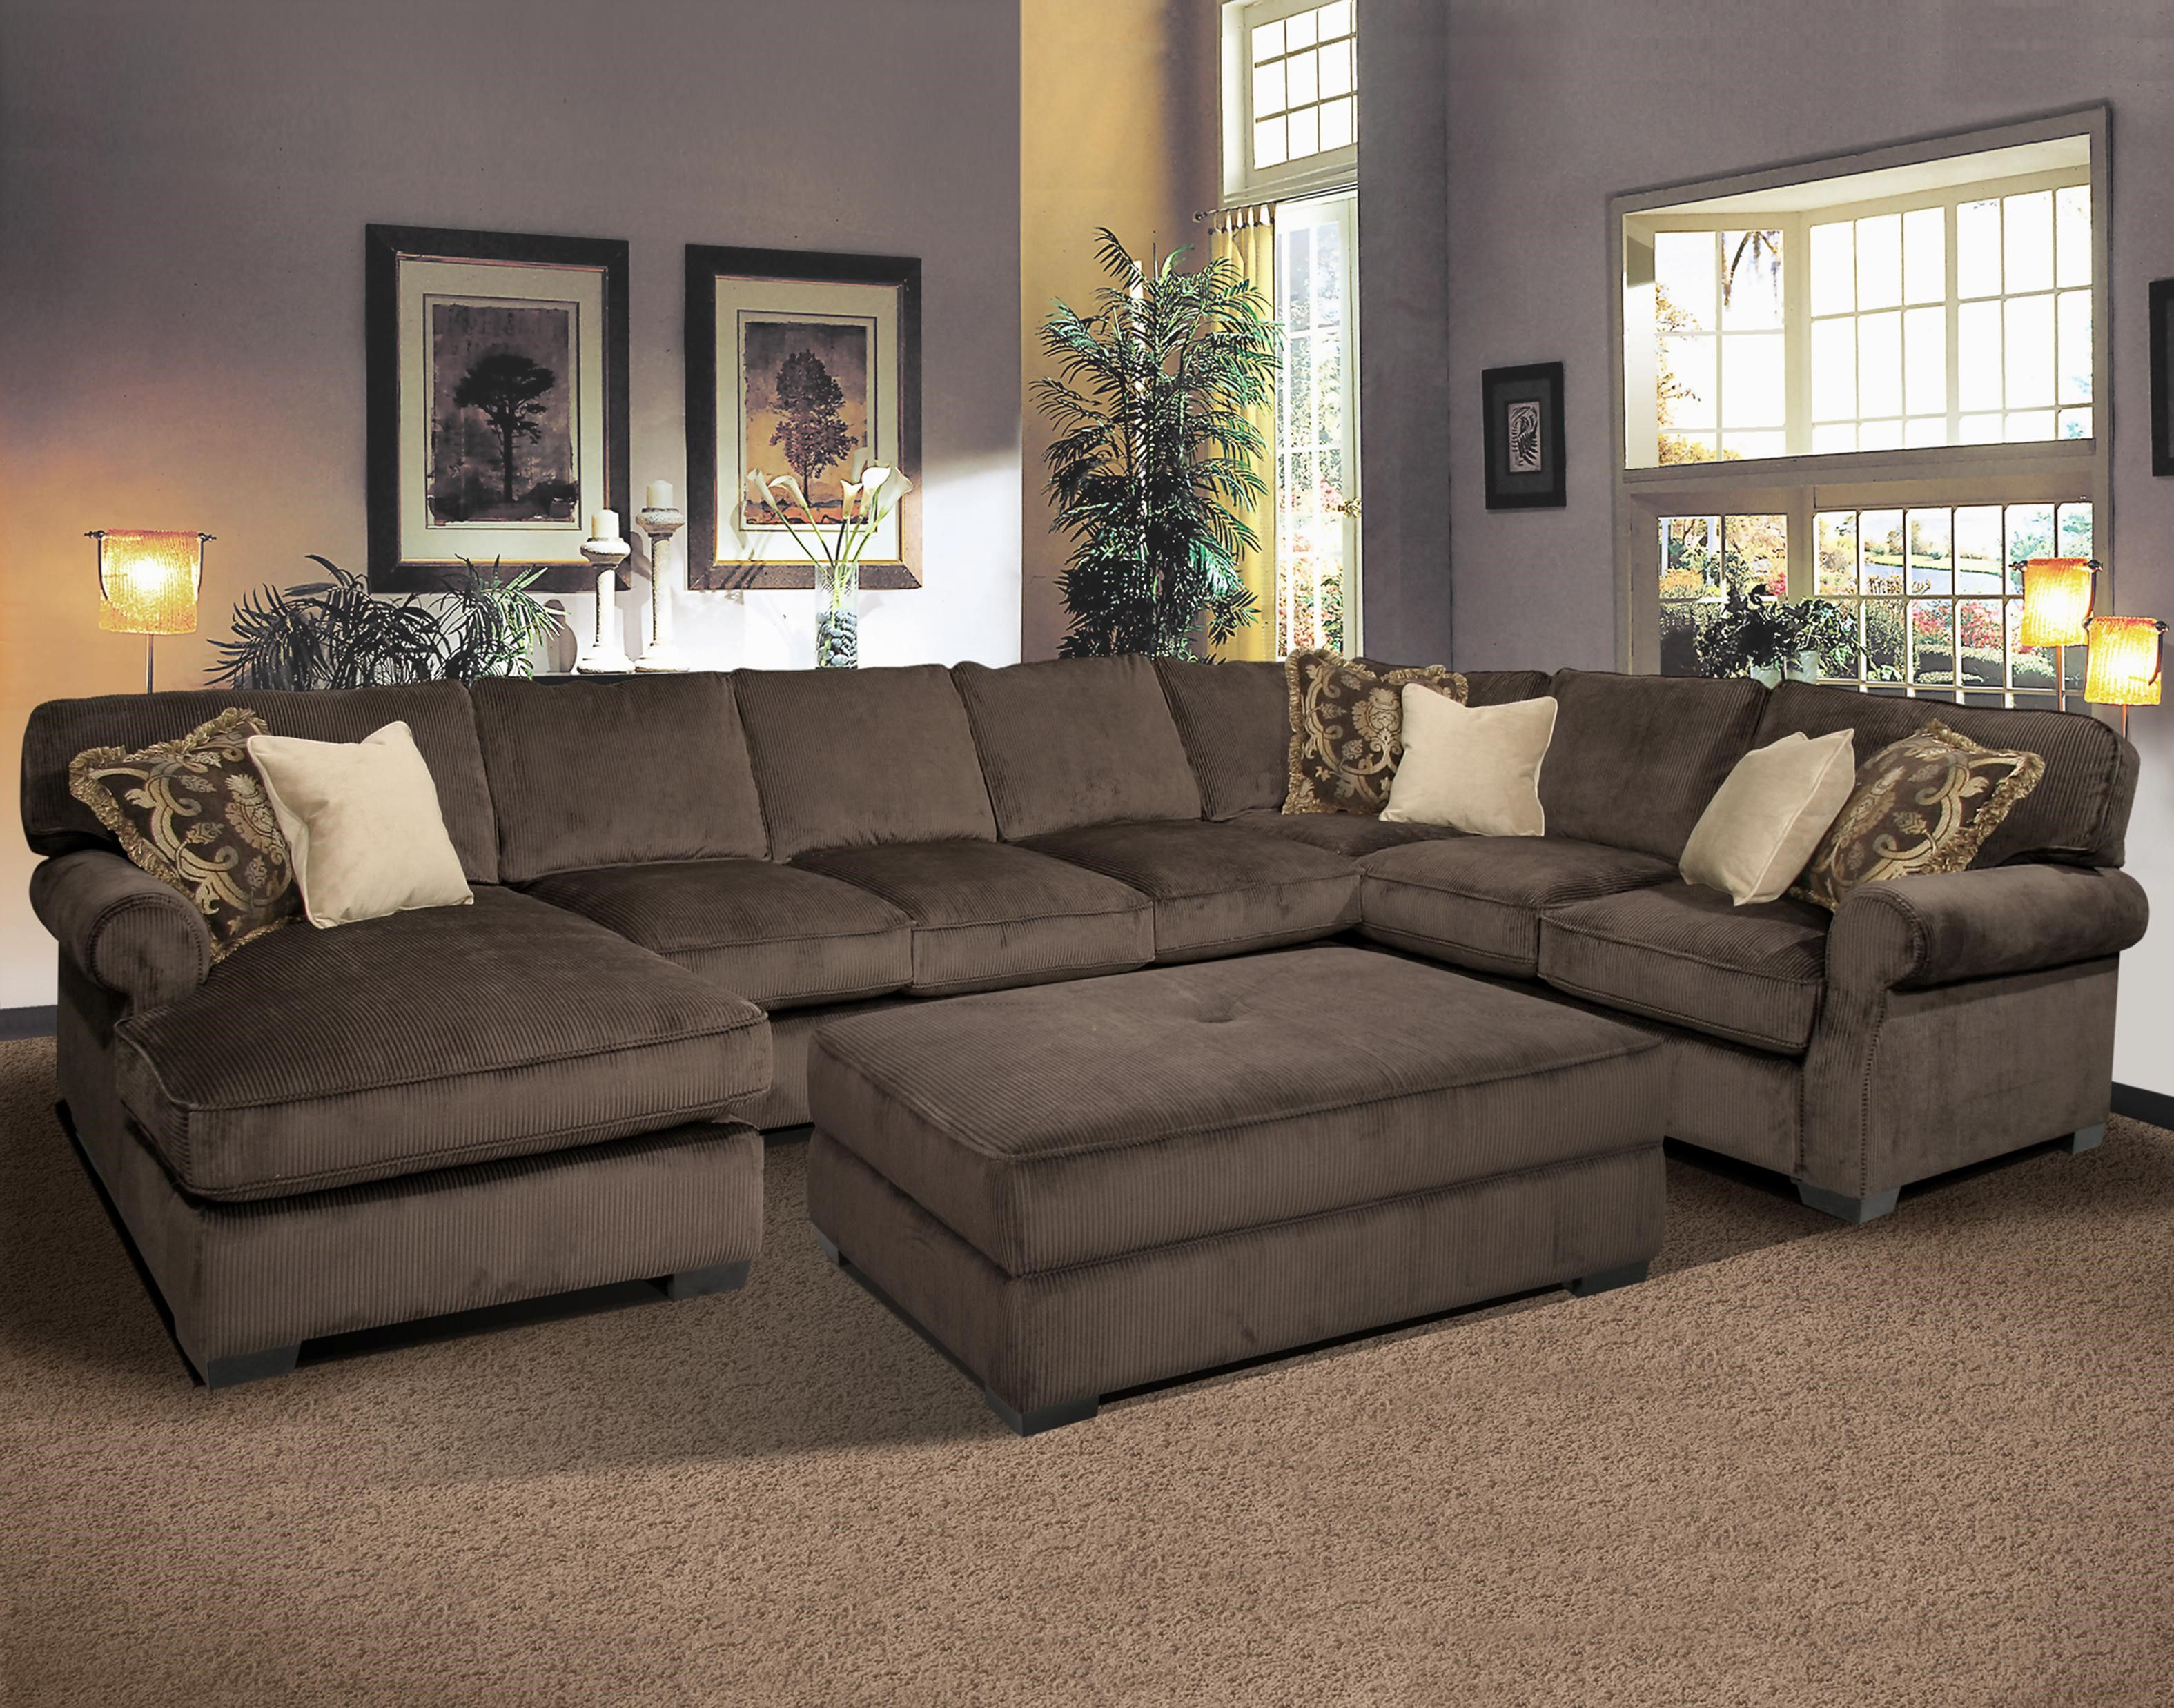 Comfortable Living Room Sofas Design With Elegant Overstuffed Couches Overstuffed Couches Couches Sales Goose Down Sofas Home Furnishings Home Home Decor